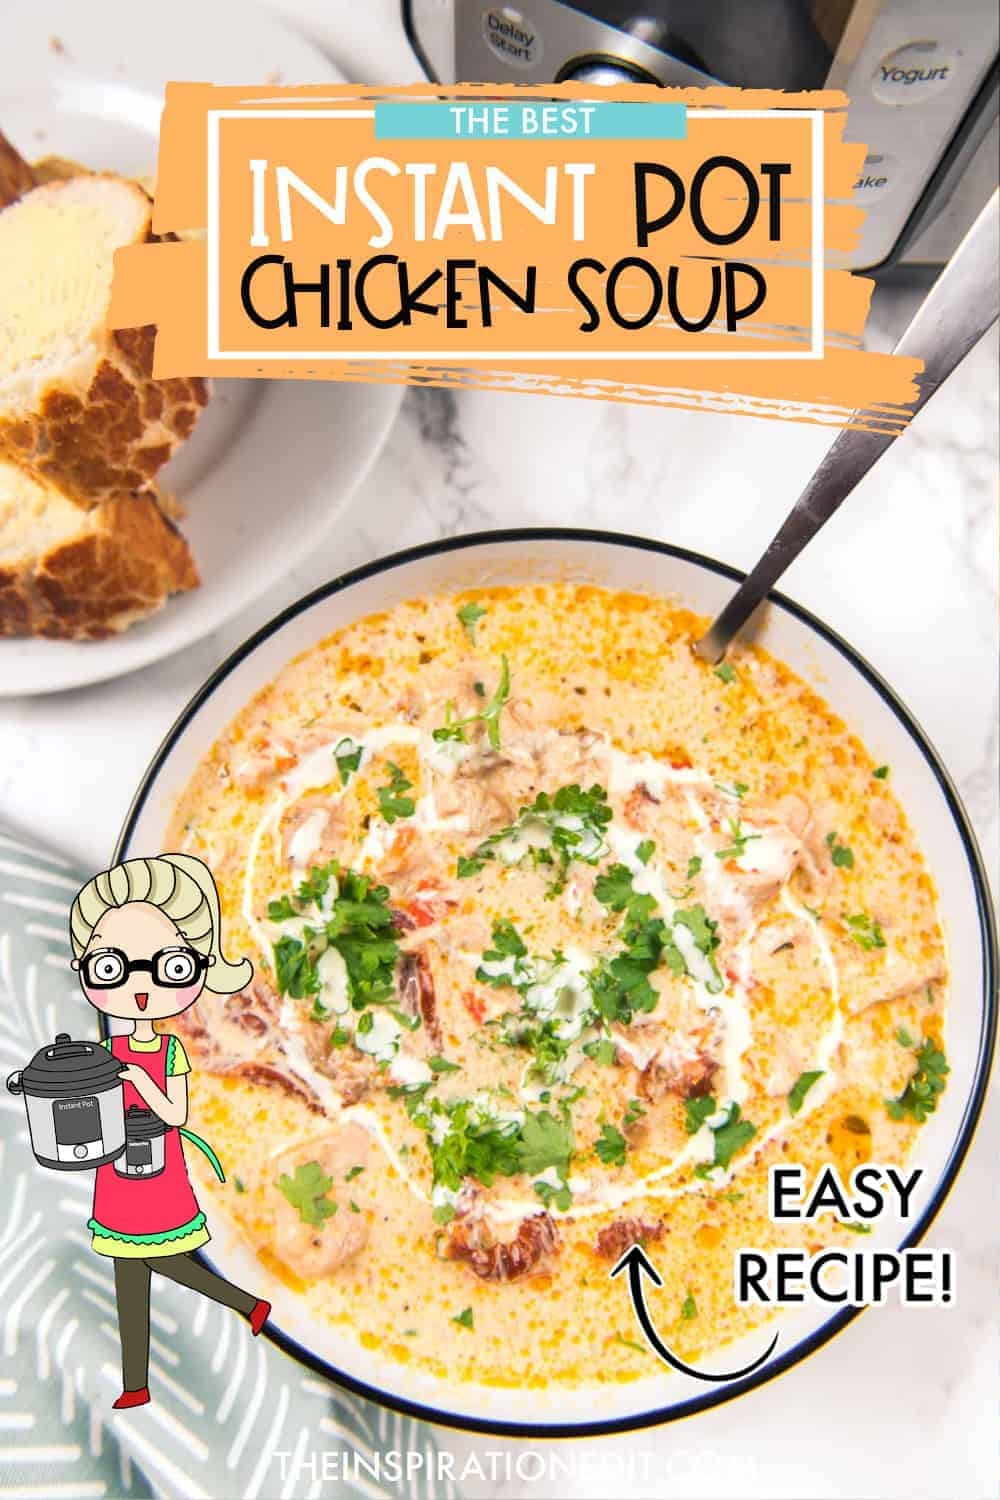 CREAMY-Instant-pot-chicken-soup